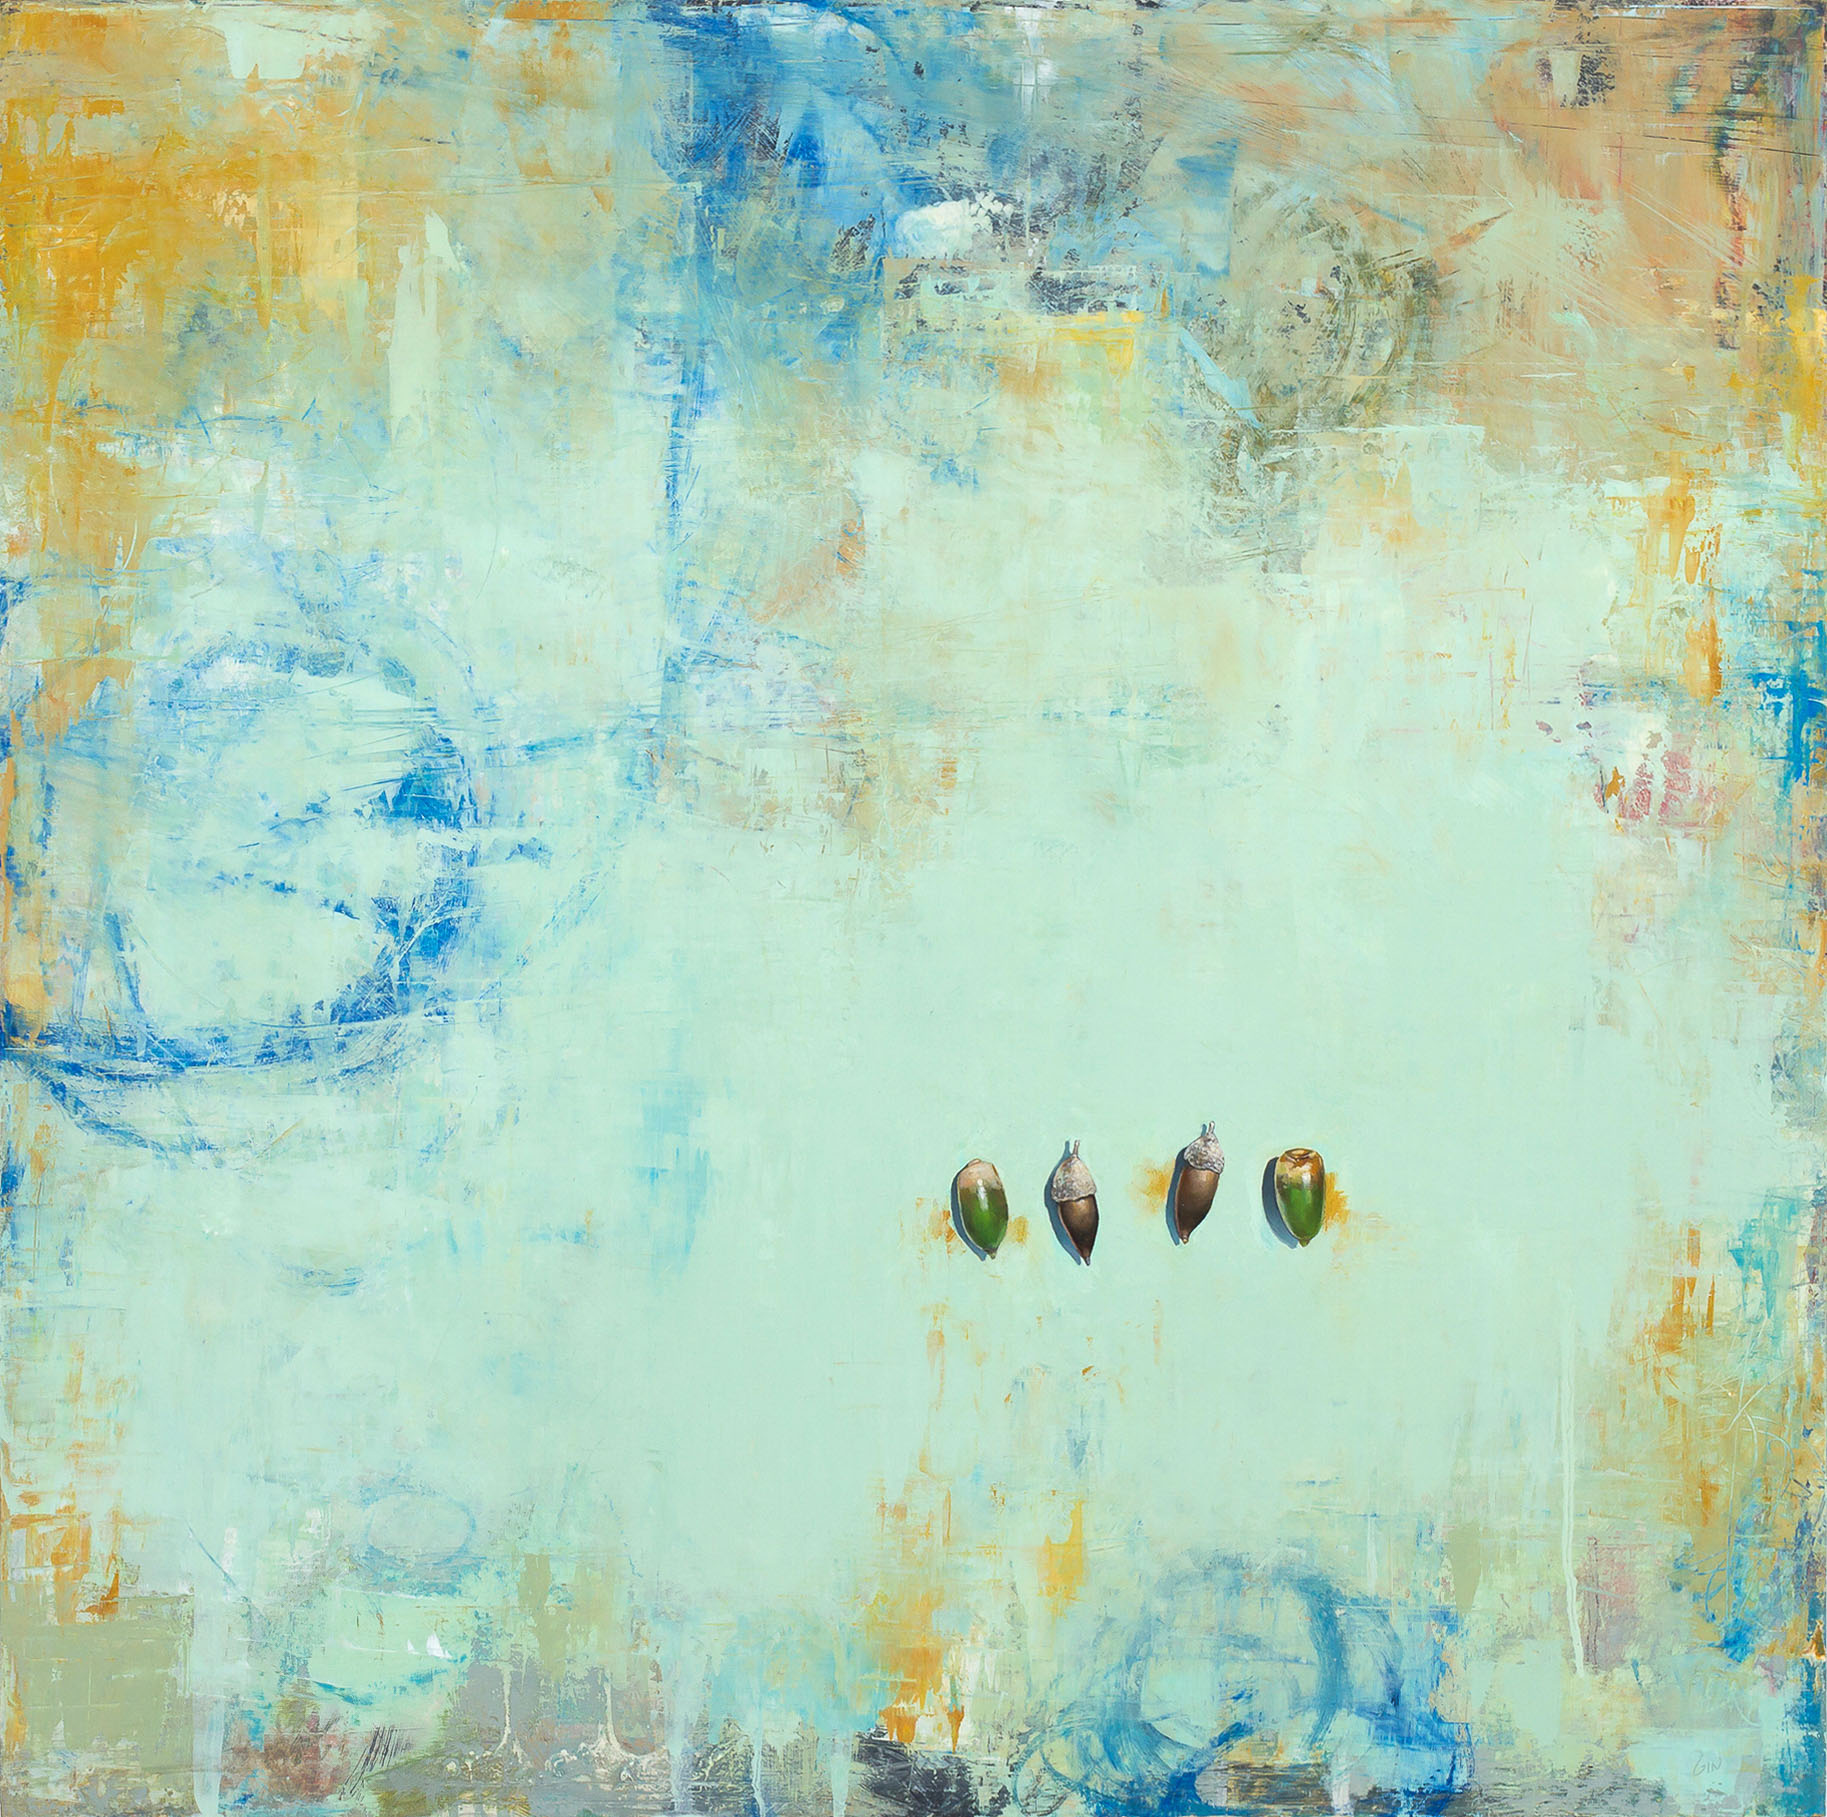 Four Acorns  2018 oil on panel 24 x 24 inches  Available at  The Haen Gallery